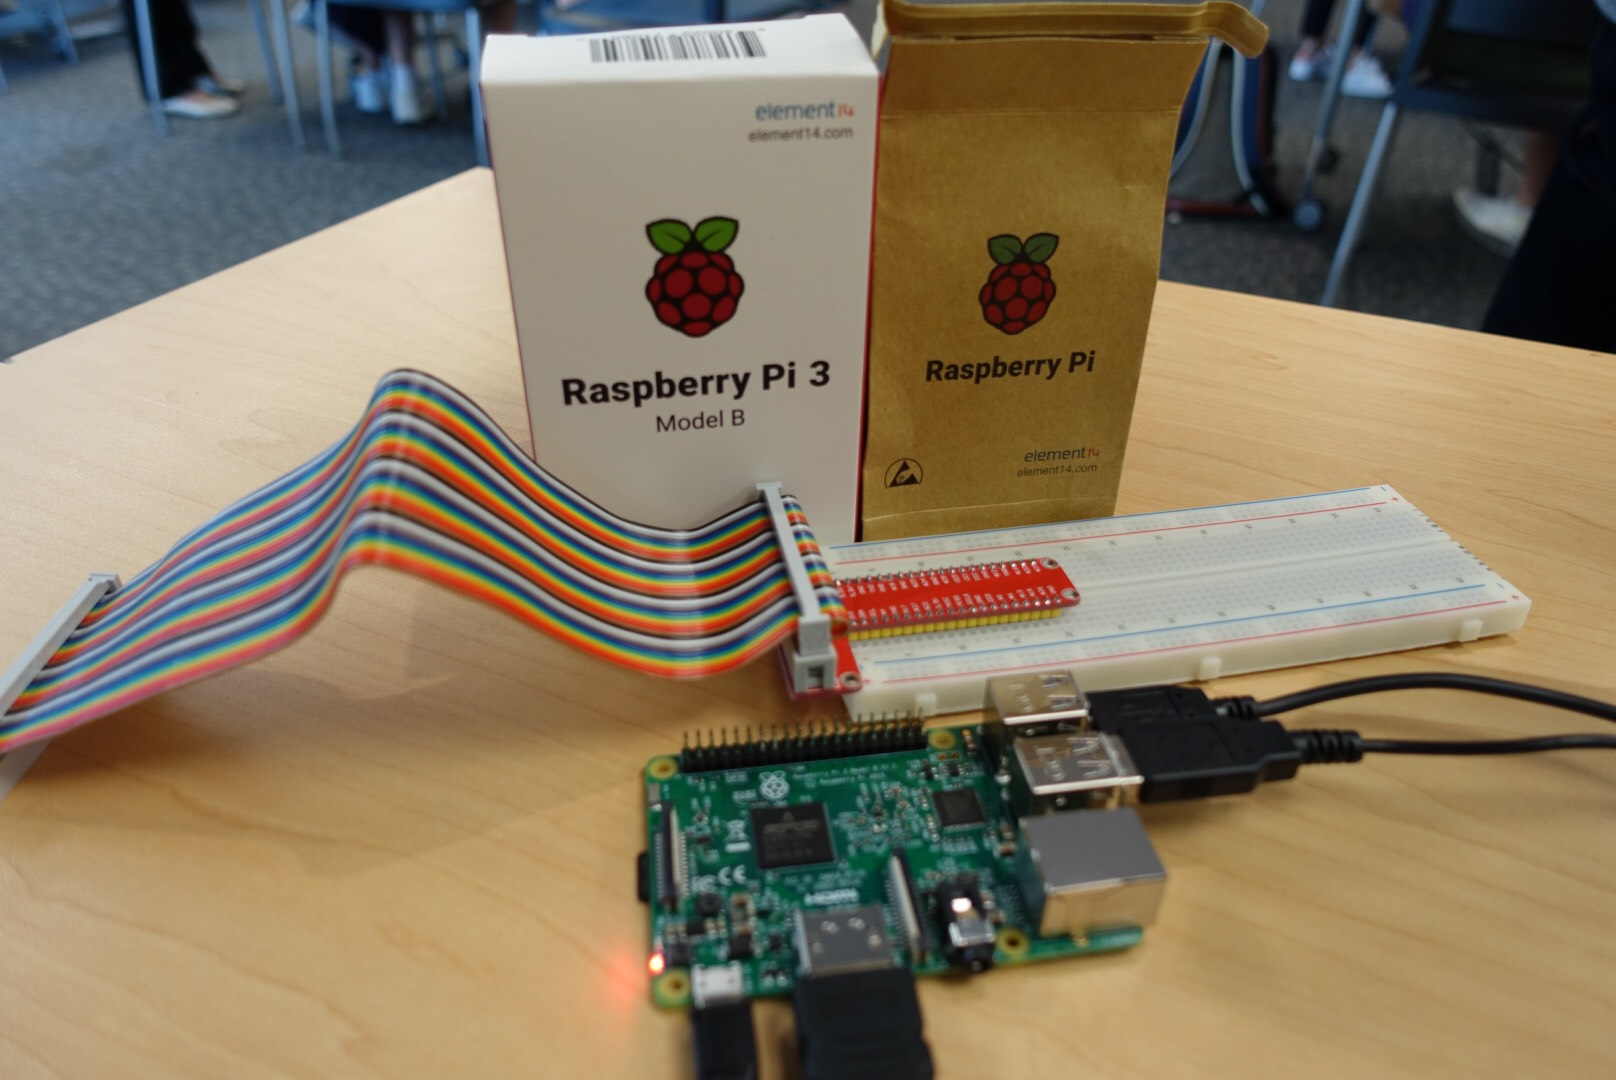 Tinkering with electronics on the Raspberry Pi